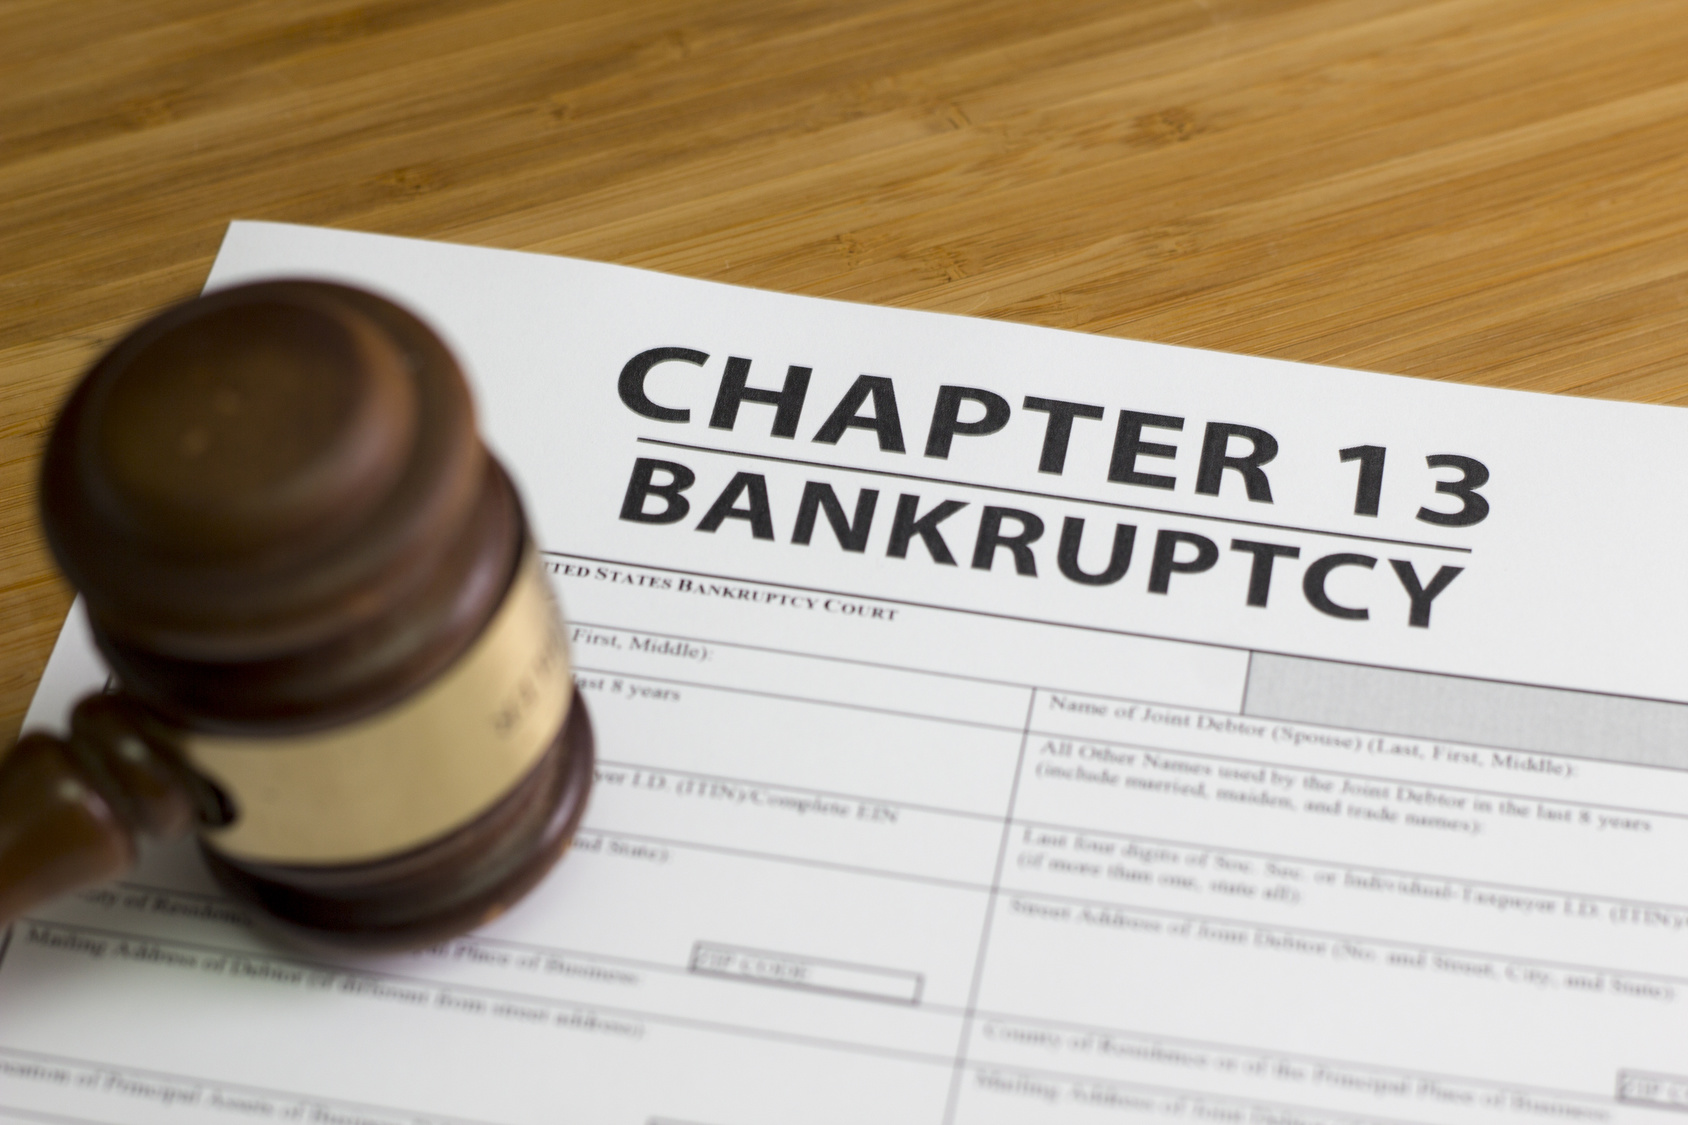 Are There Any Prerequisites for Filing for Bankruptcy?